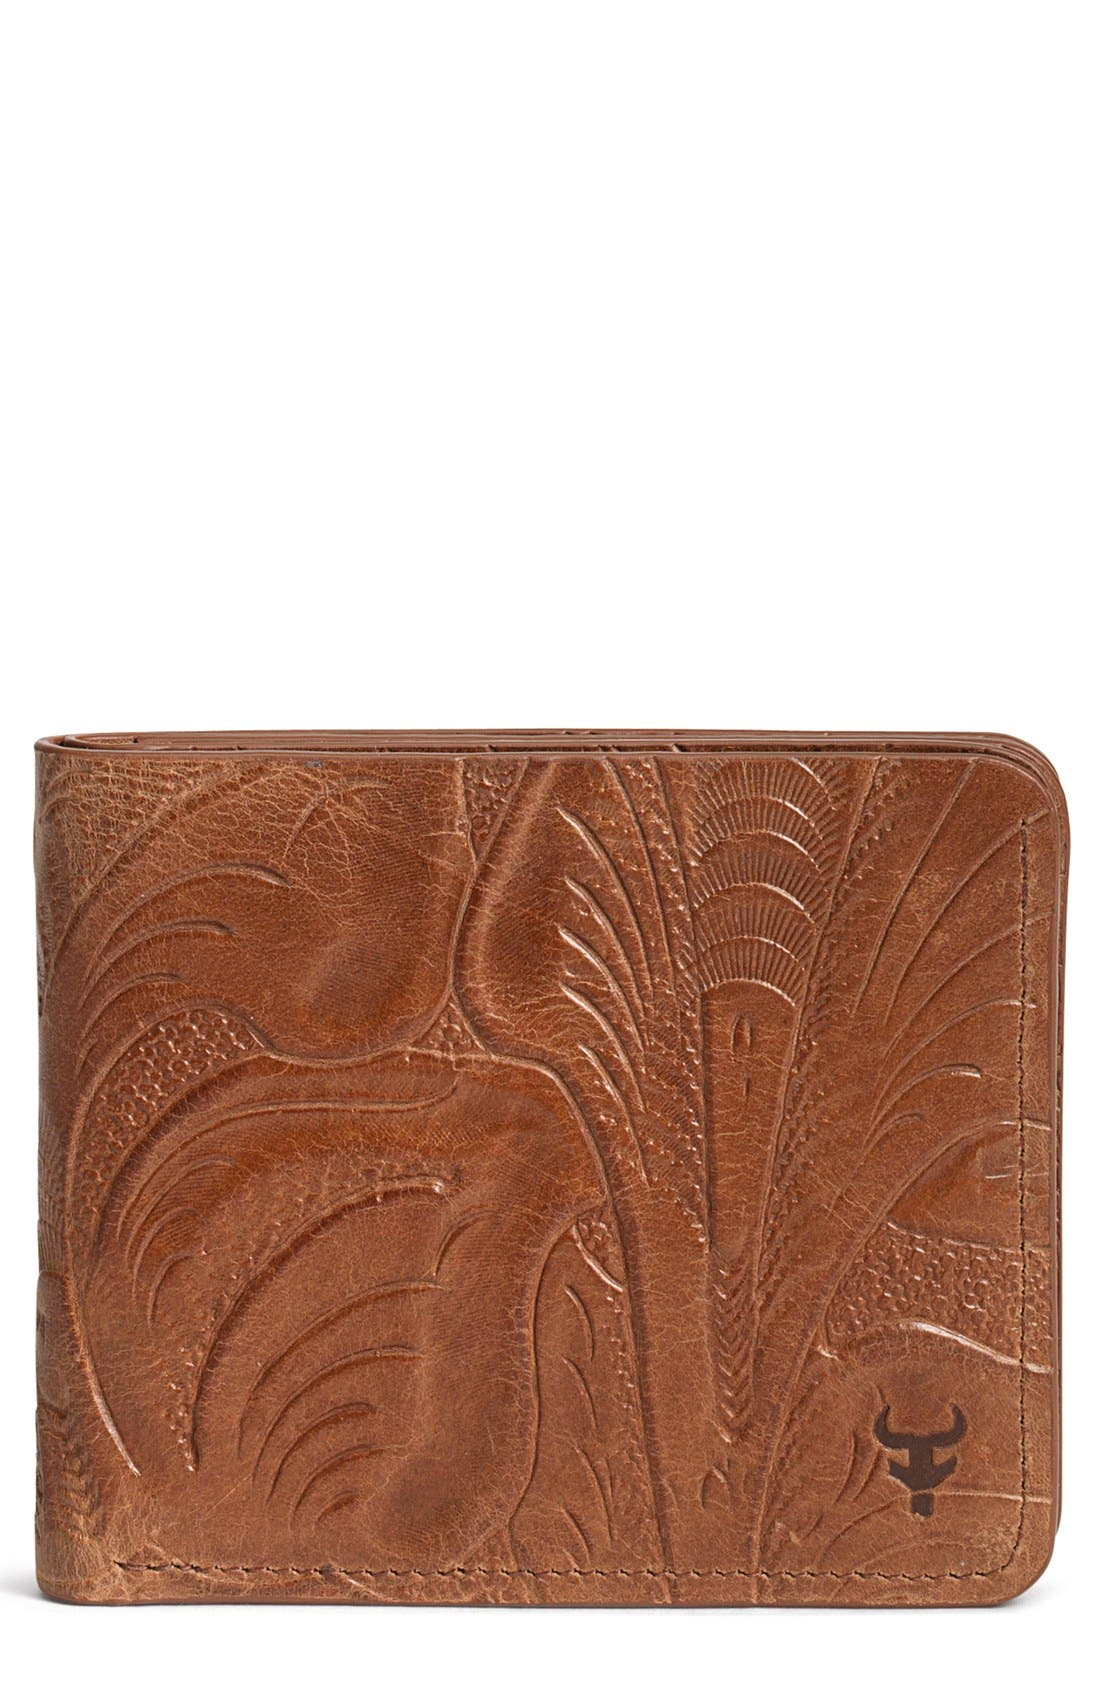 'Jackson' Slimfold Italian Steer Leather Wallet,                         Main,                         color, Tan